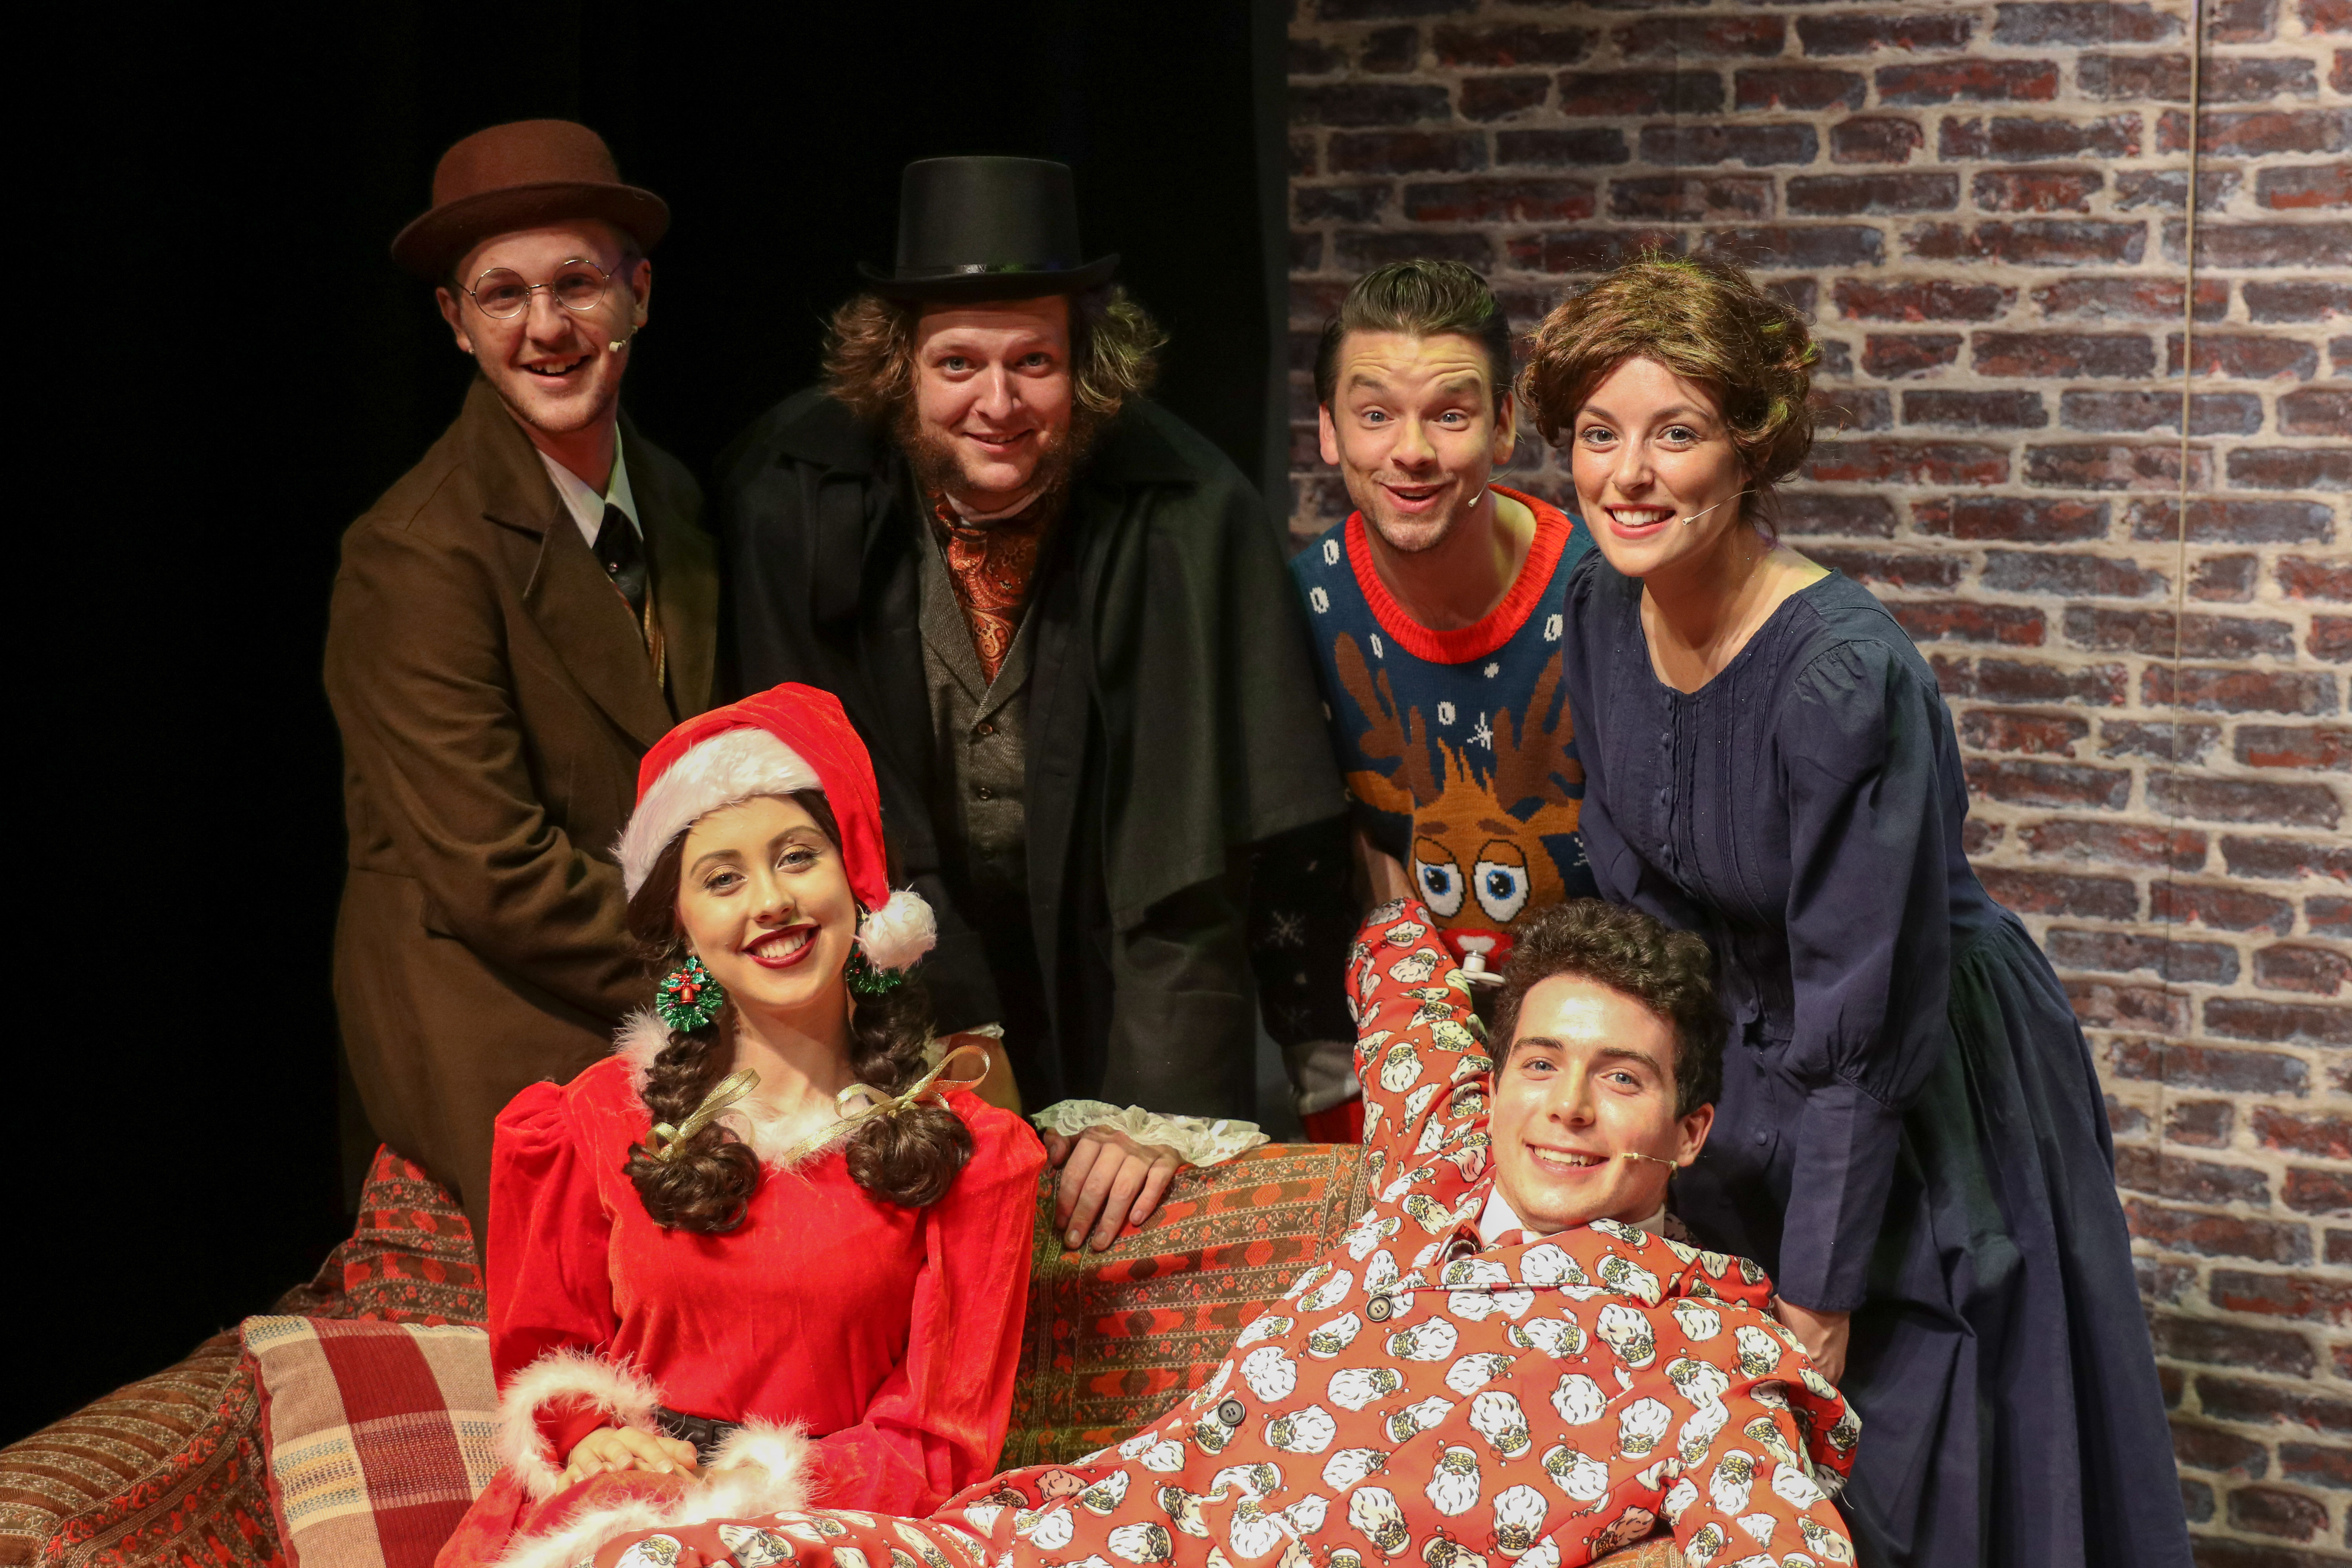 The cast of A Christmas Carol